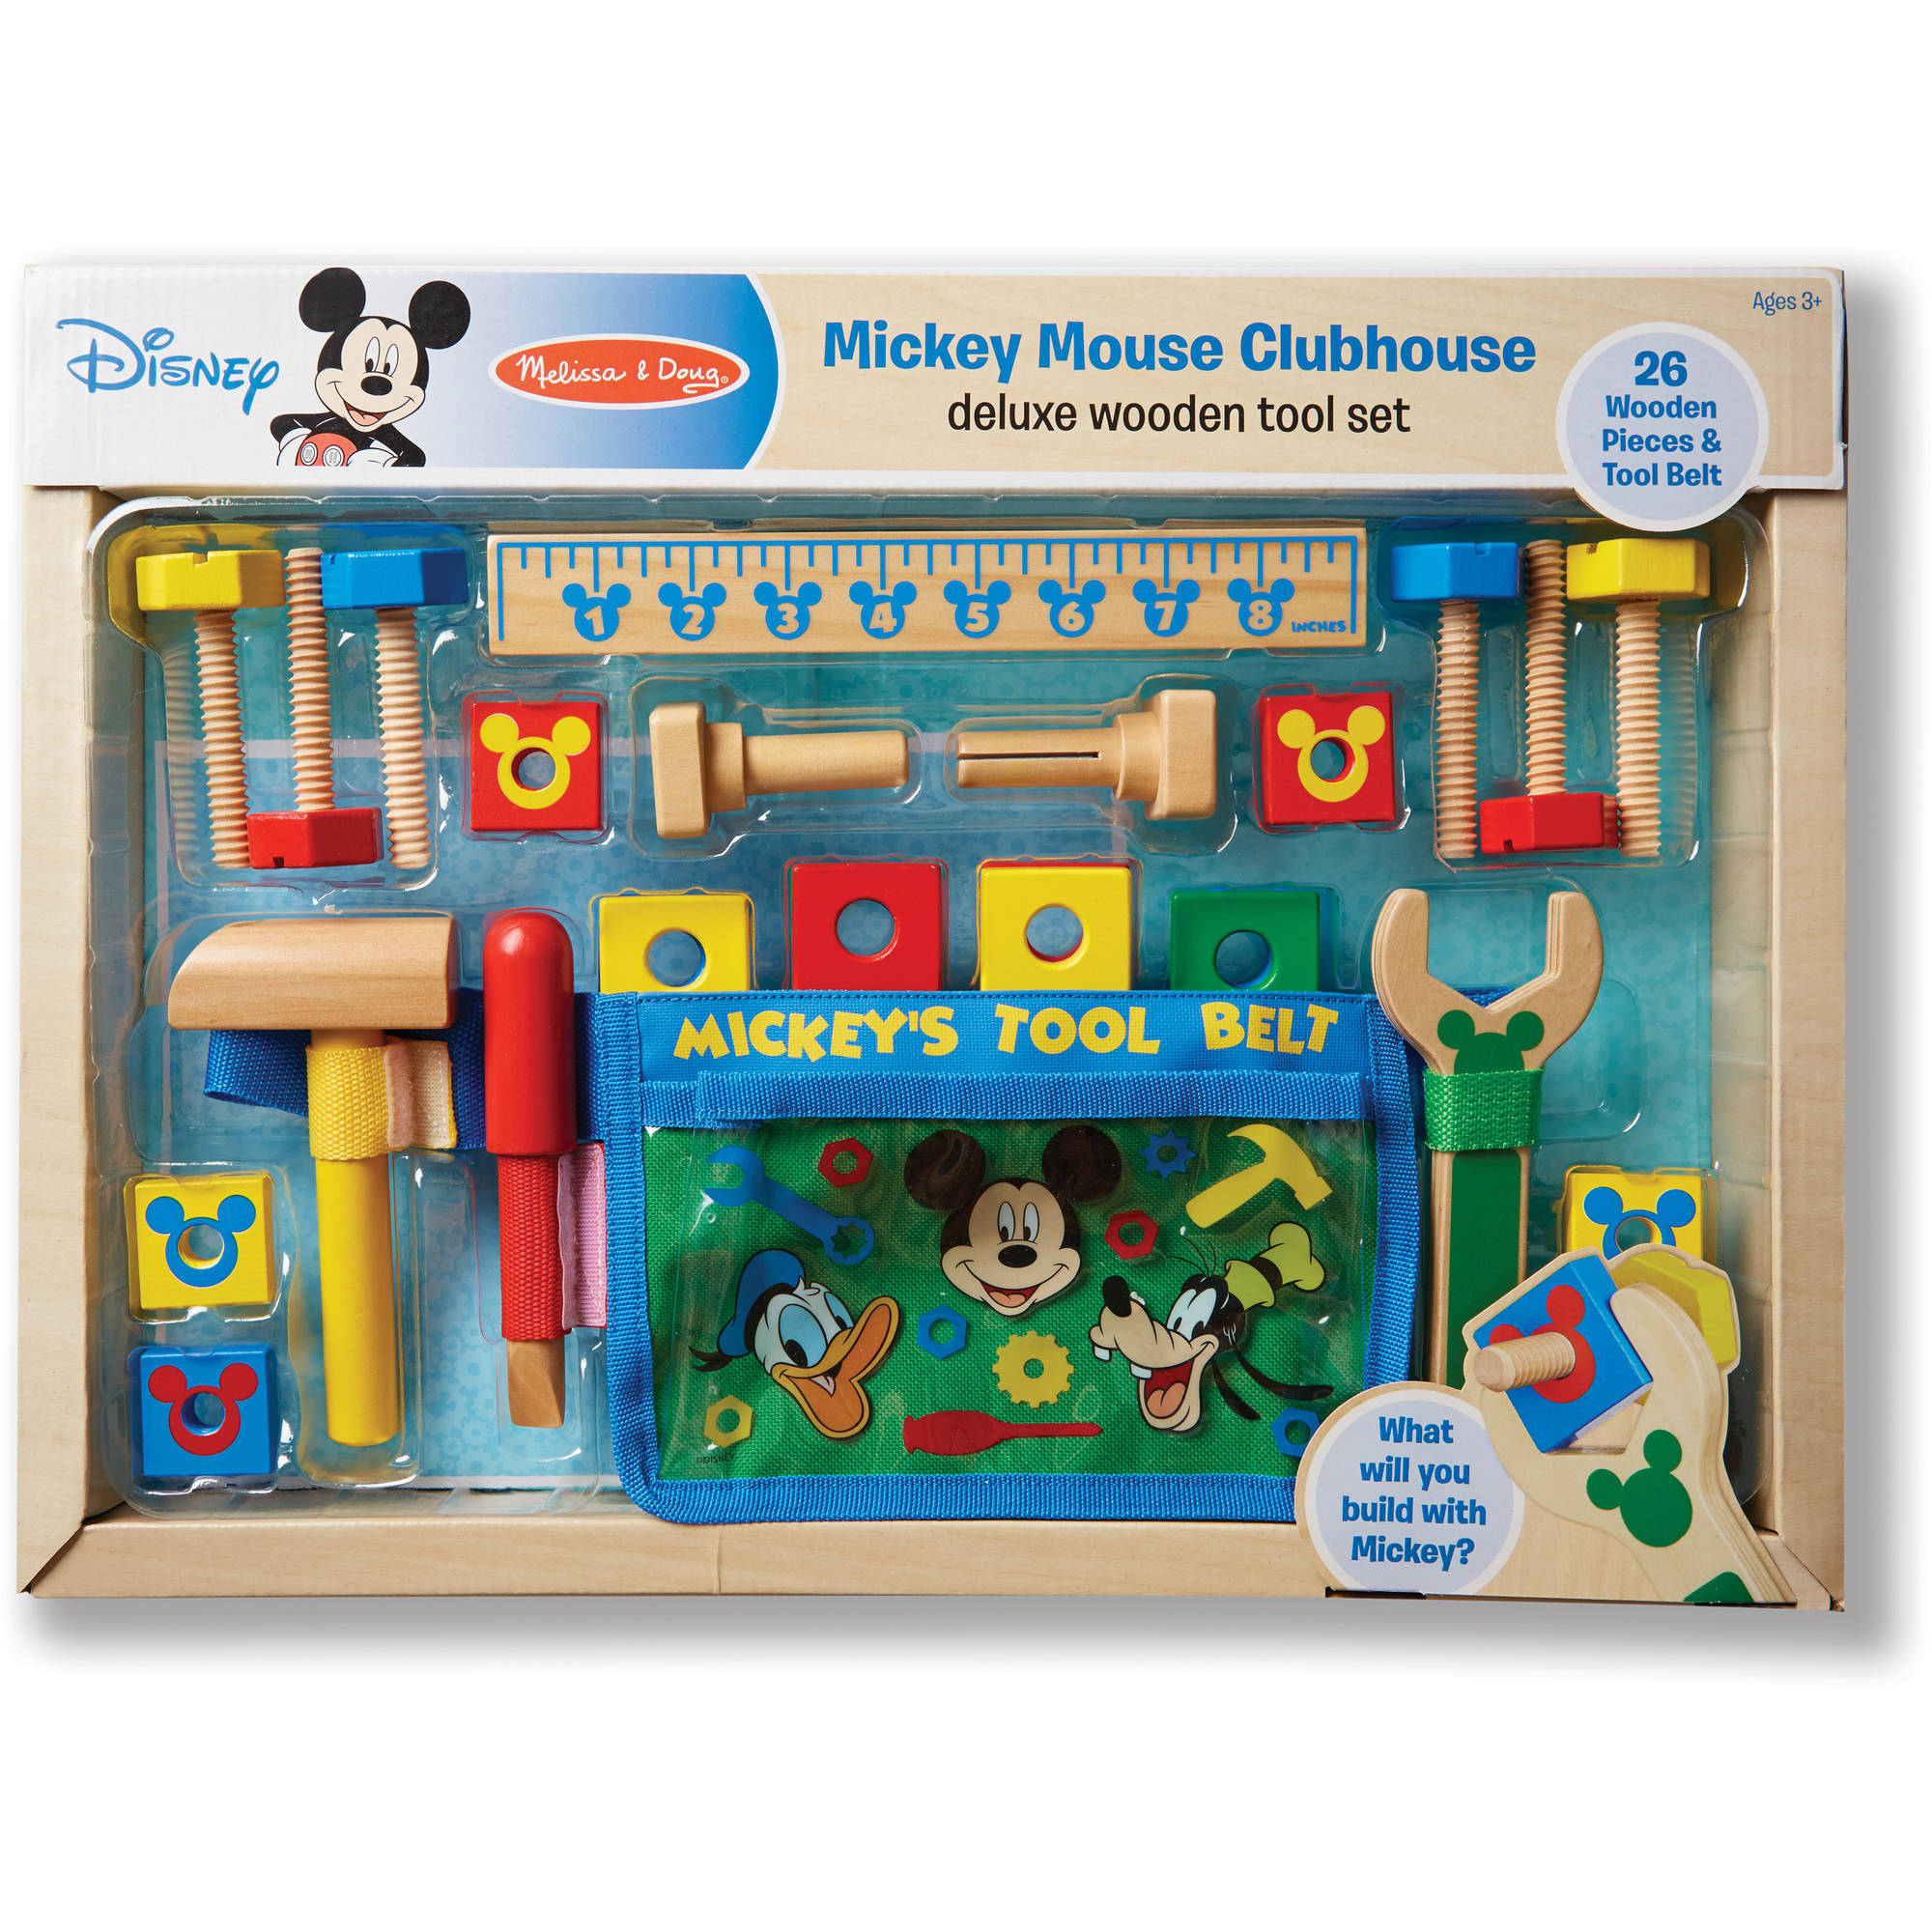 Mickey Mouse Clubhouse Rug Home Decor